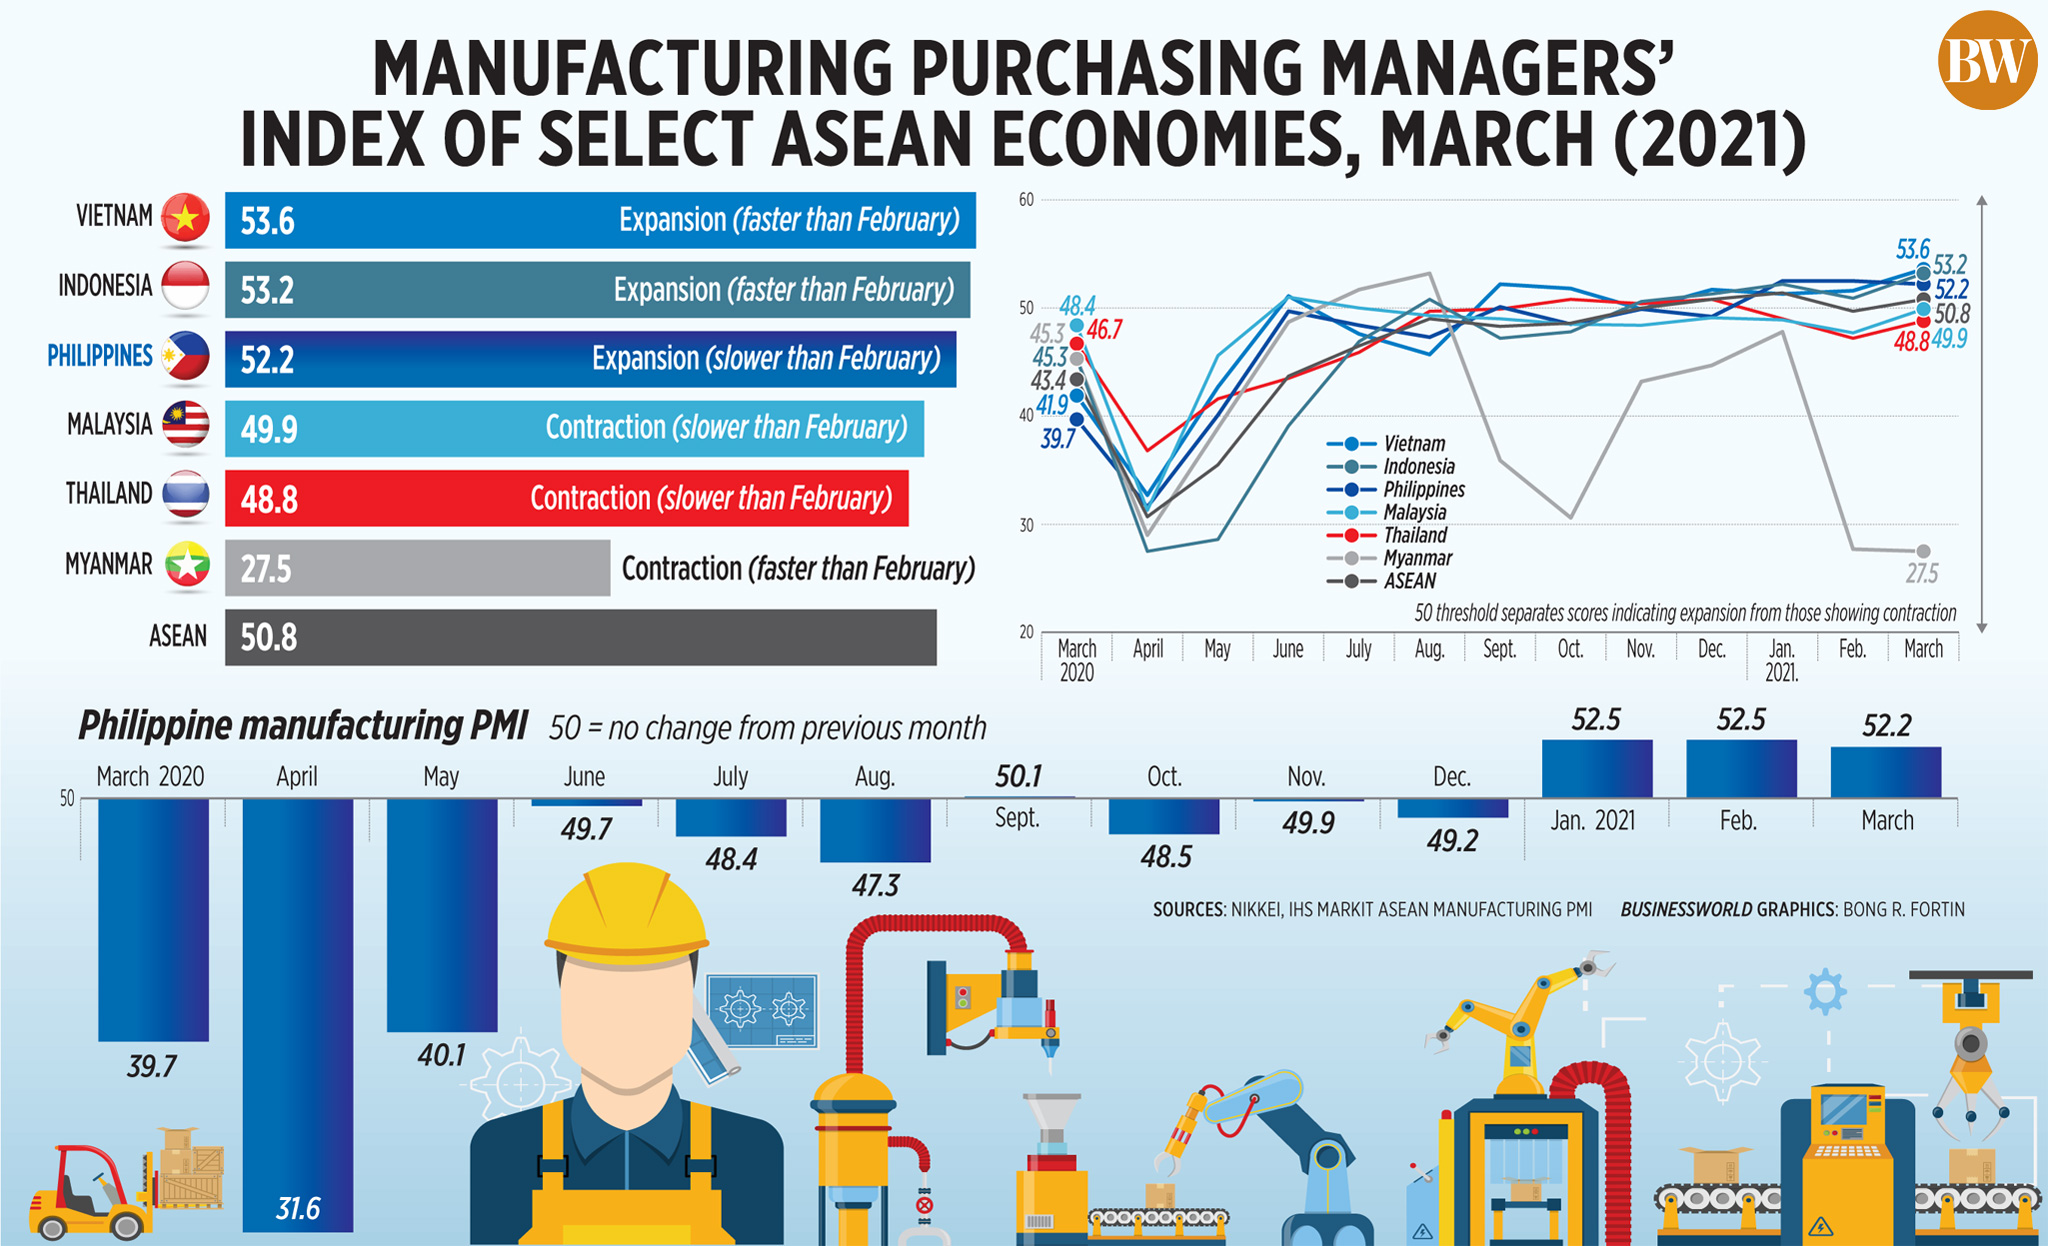 Manufacturing purchasing managers' index of select ASEAN economies, March (2021)